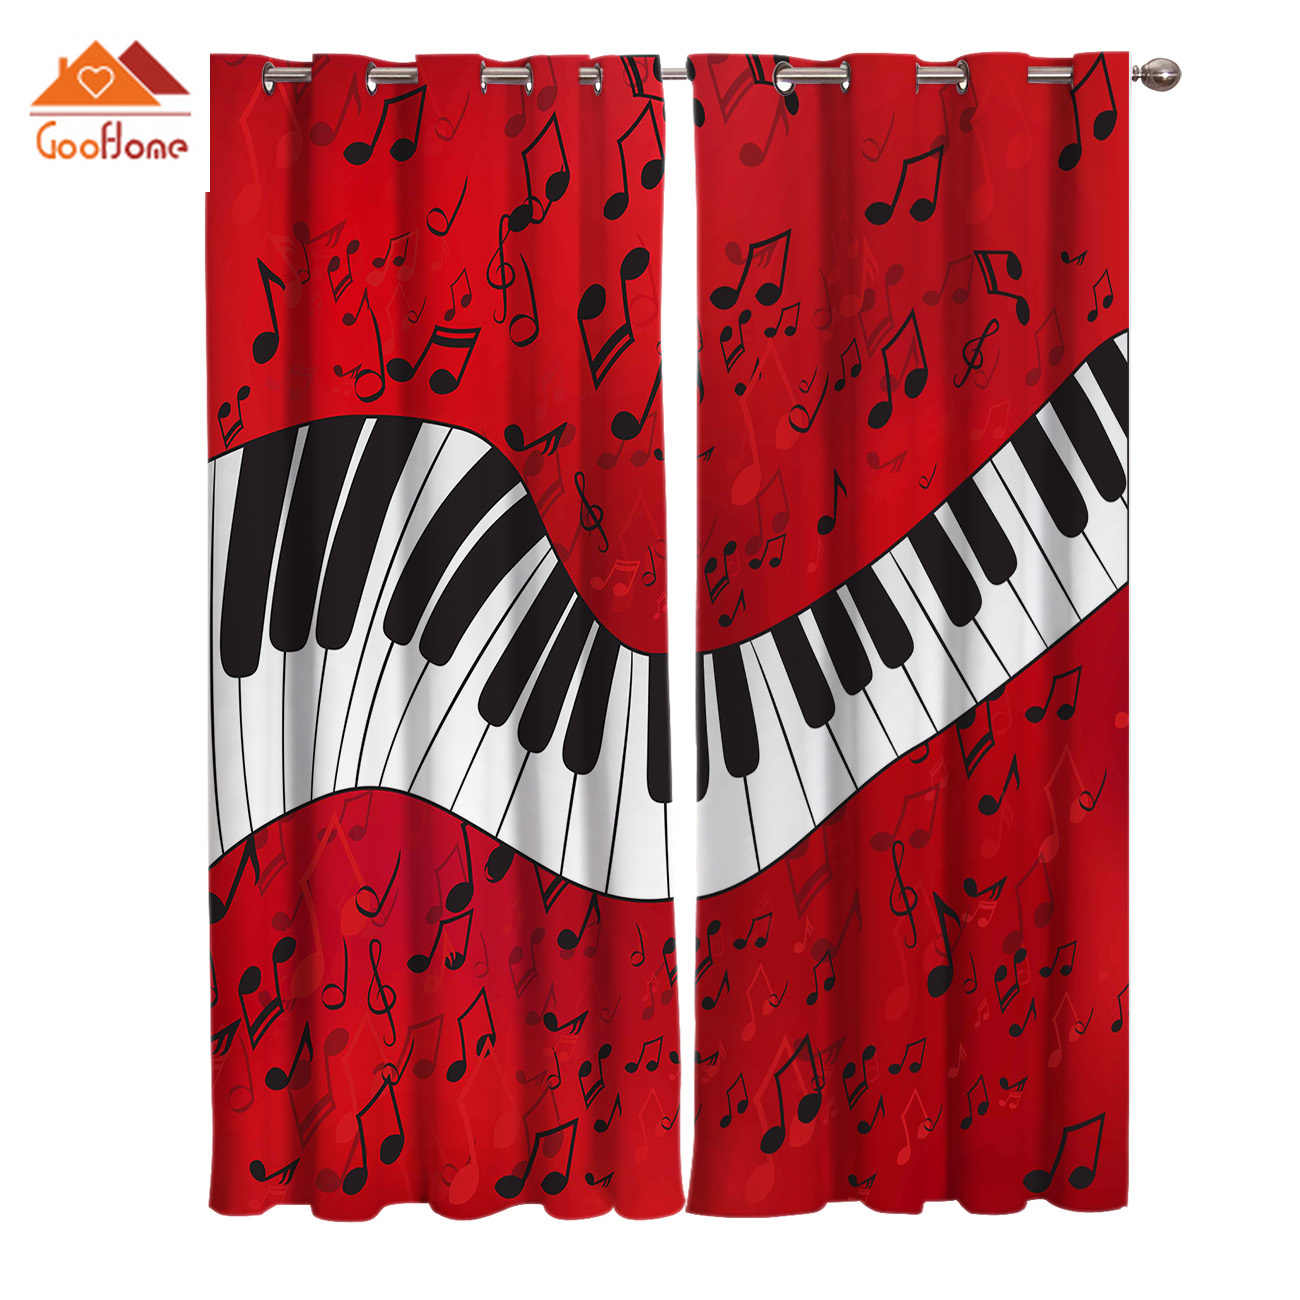 Piano Music Note Red Background Window Curtains Living Room Outdoor Fabric Drapes Curtain Home Decor